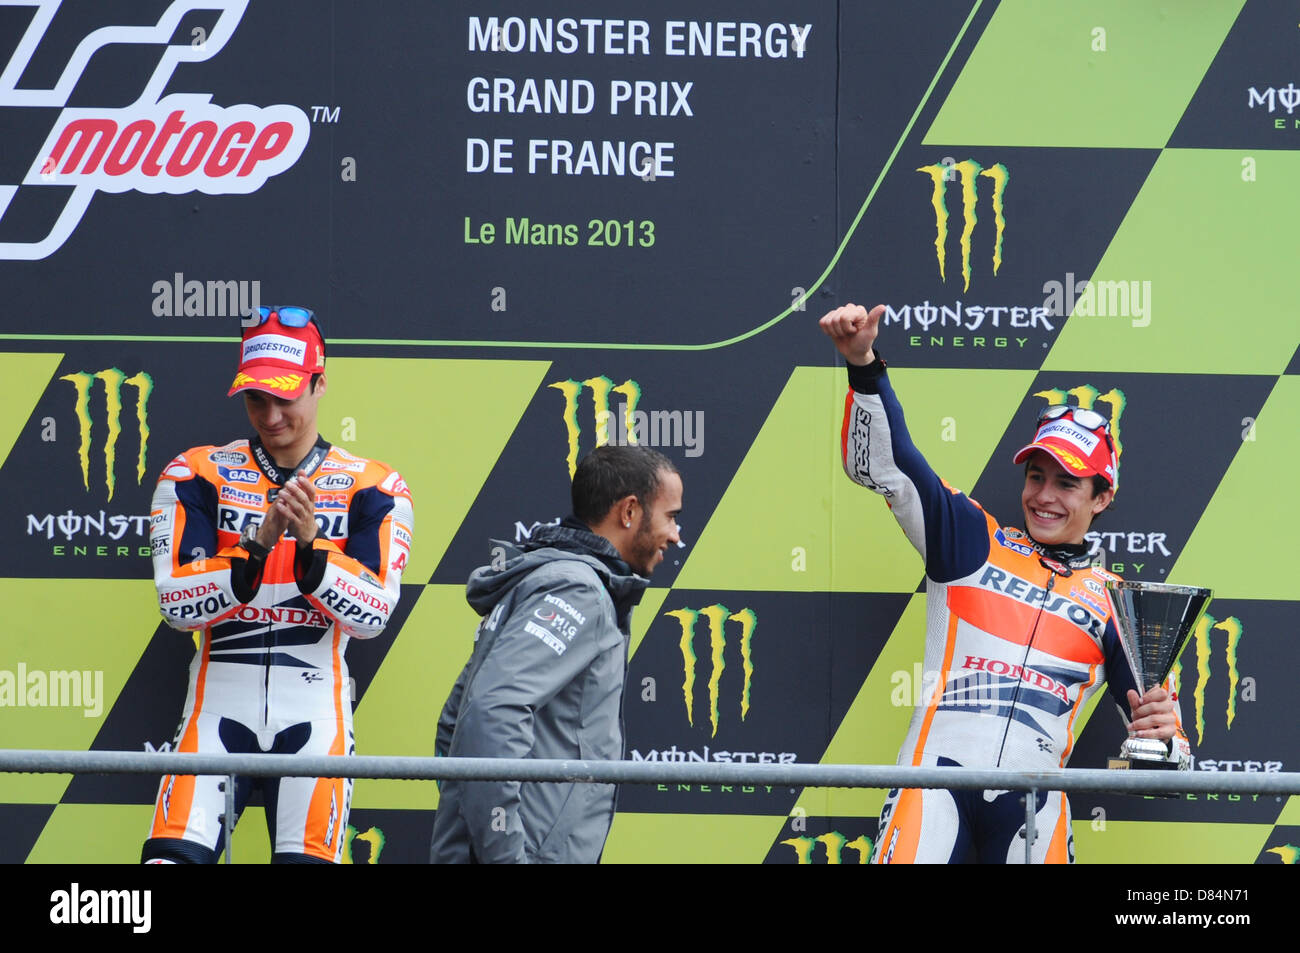 Le Mans, France. 19th May, 2013. Marc Marquez 3th Place of the Moto GP World Championship from the Le Mans racing - Stock Image